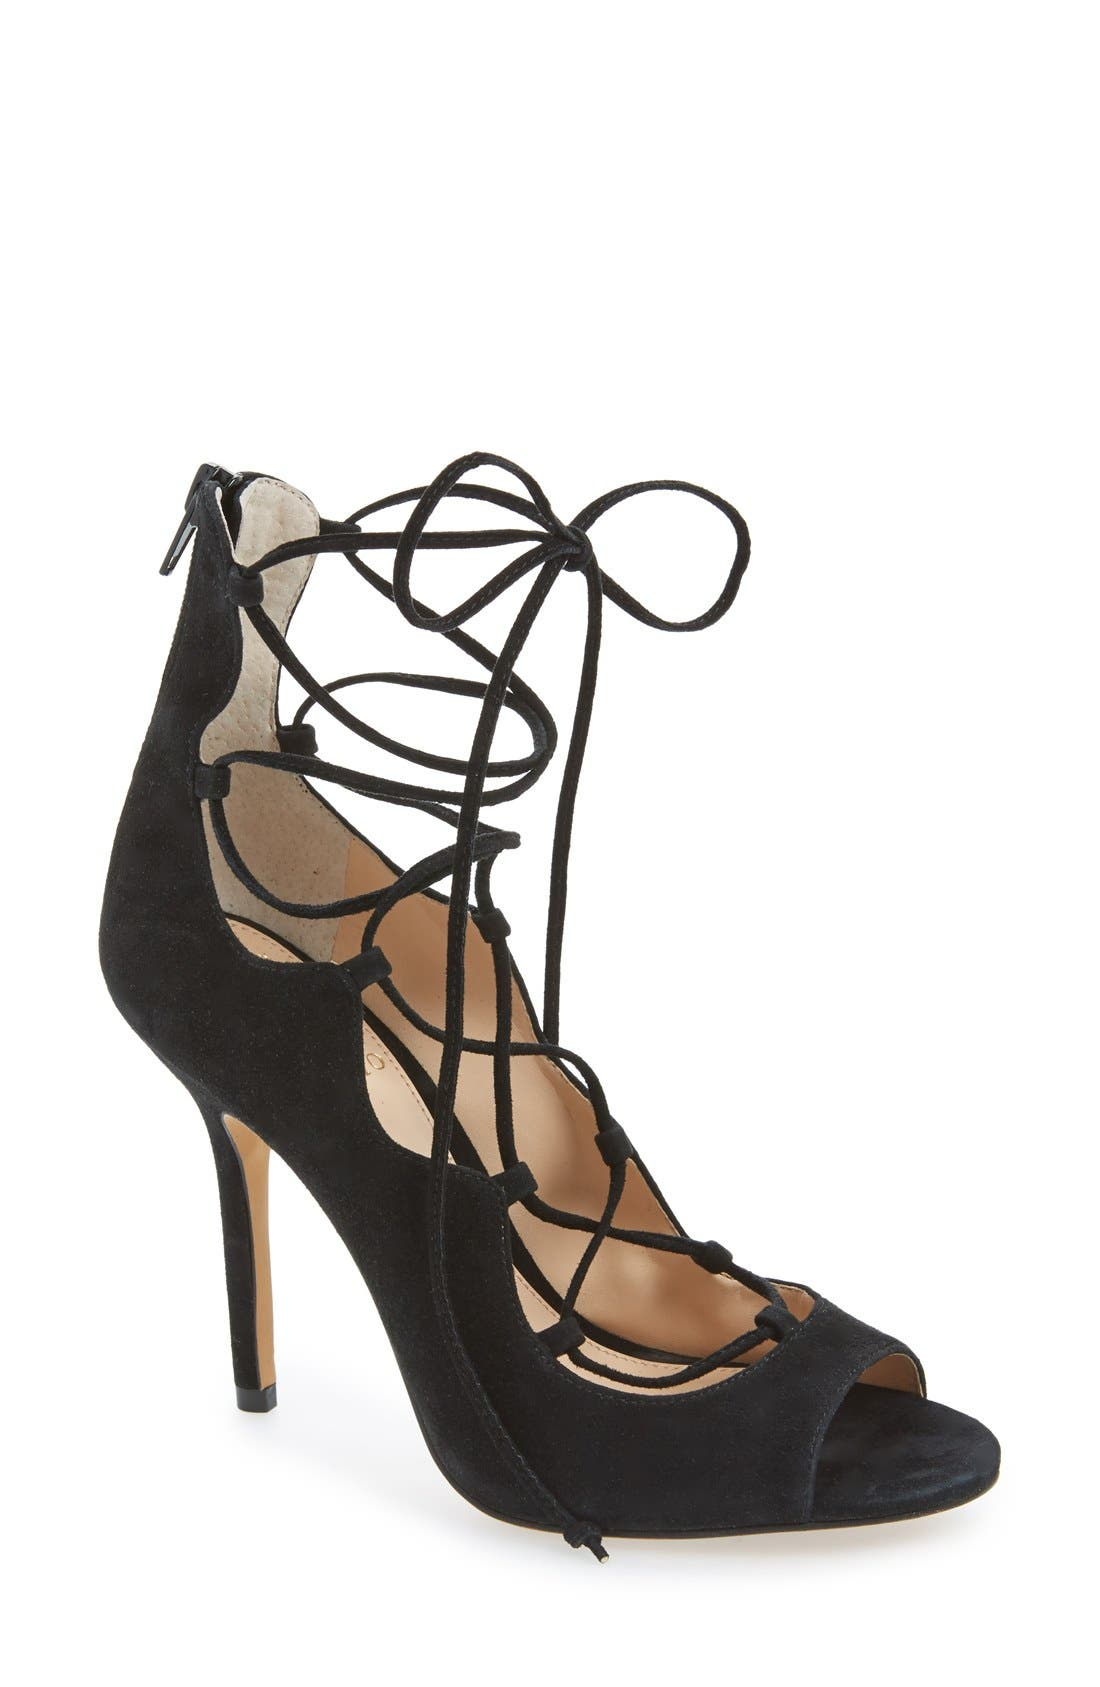 'Sandria' Peep Toe Ghillie Sandal,                             Main thumbnail 1, color,                             001